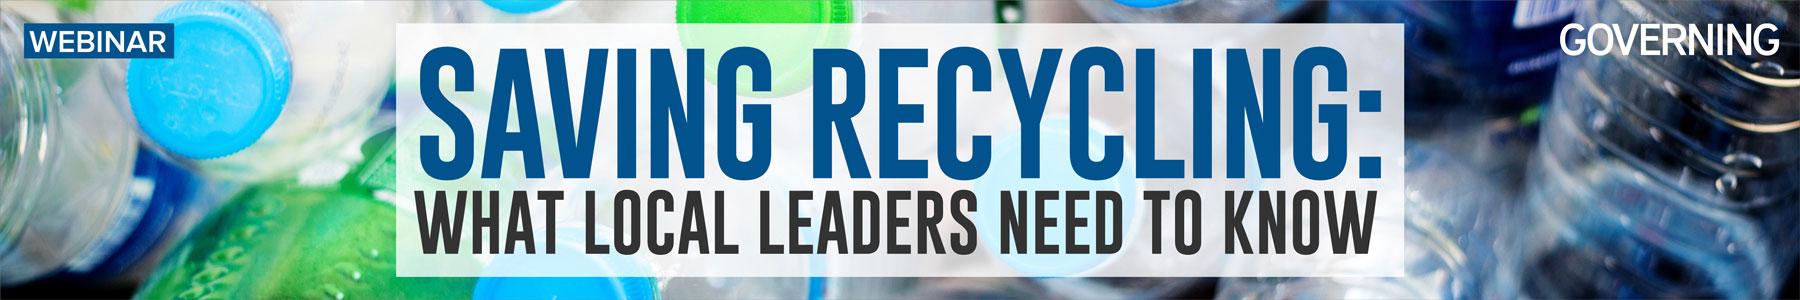 Saving Recycling: What Local Leaders Need to Know